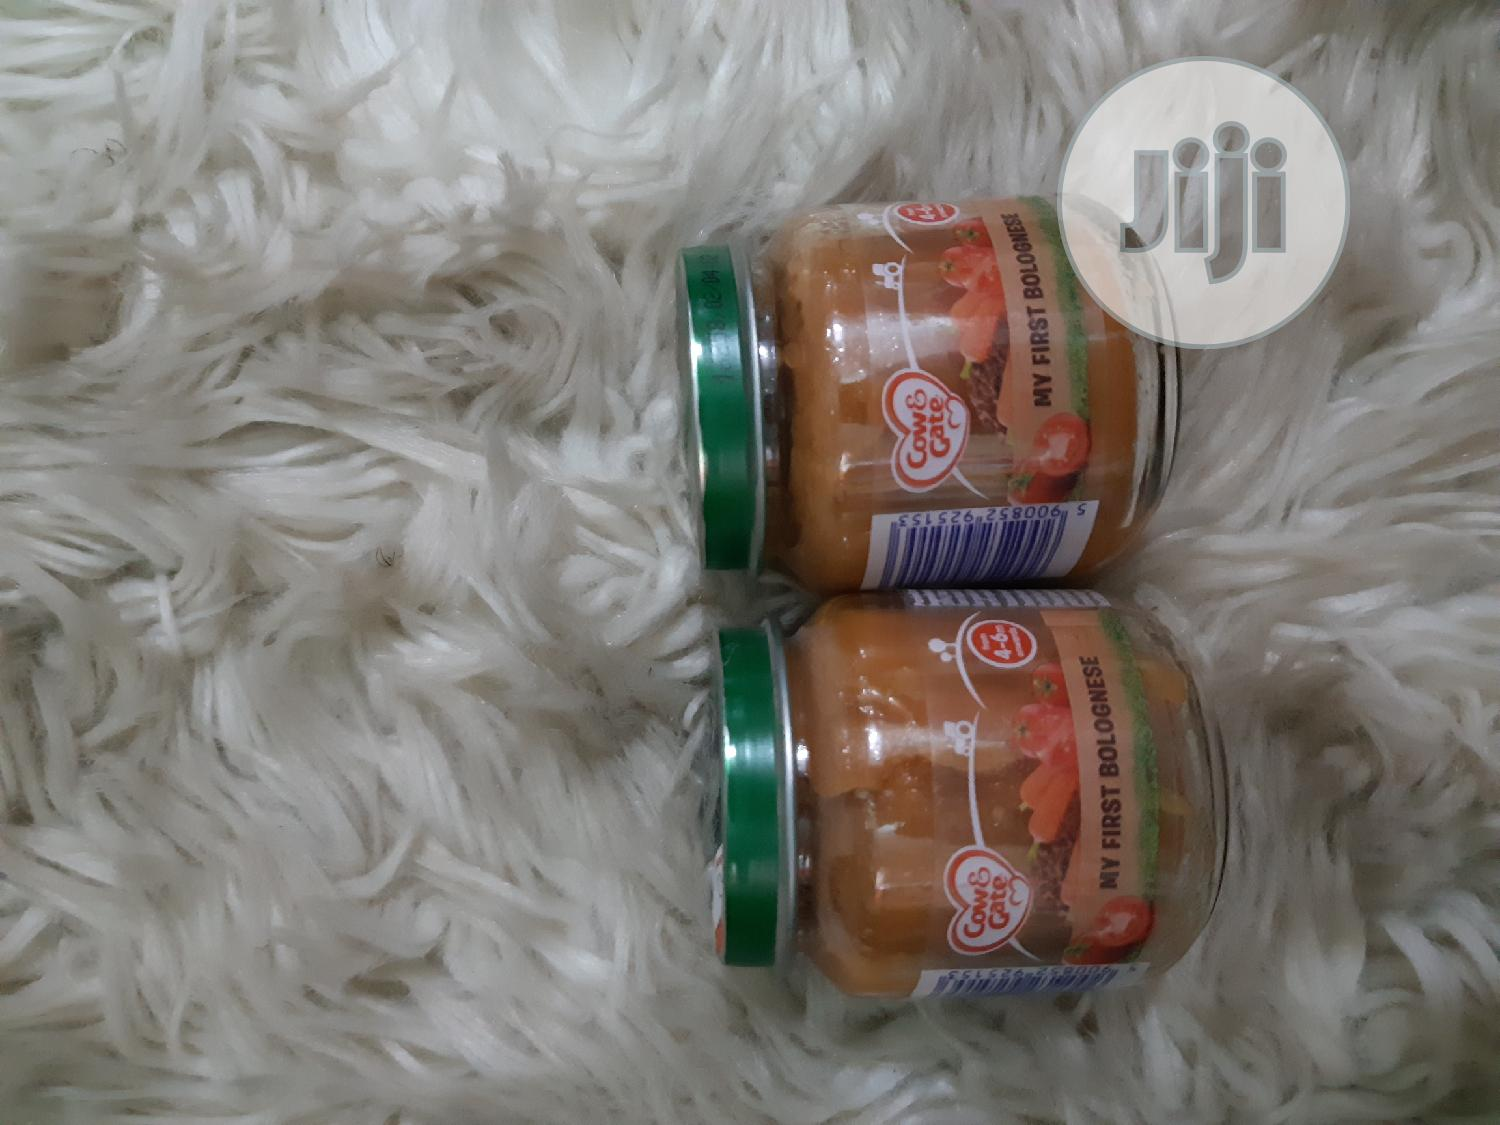 Archive: Cow&Gate Bottle Food